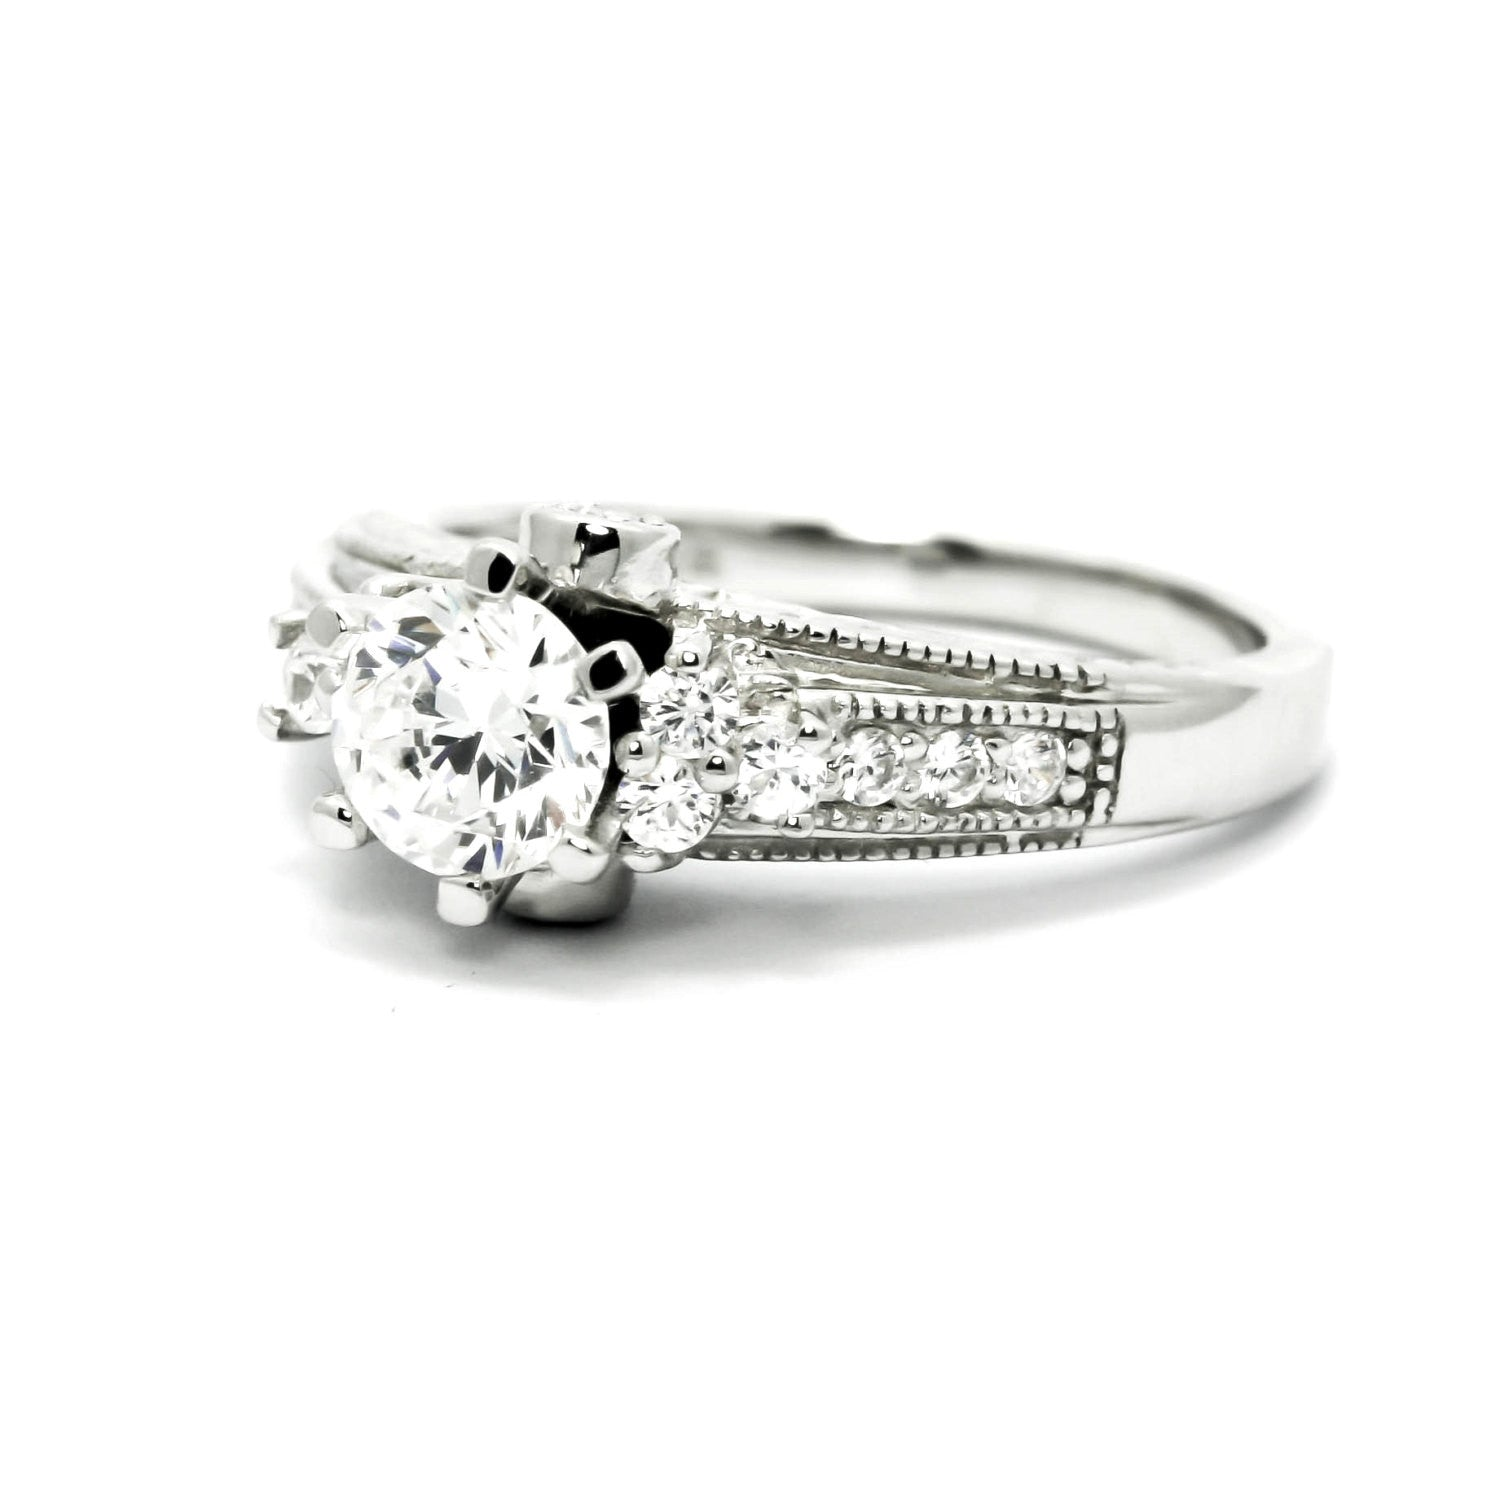 "Antique Looking Diamond Engagement Ring With 6.5 mm  ""Forever Brilliant"" Moissanite And .34 Carats Of Diamonds, Anniversary Ring - FBY11623"